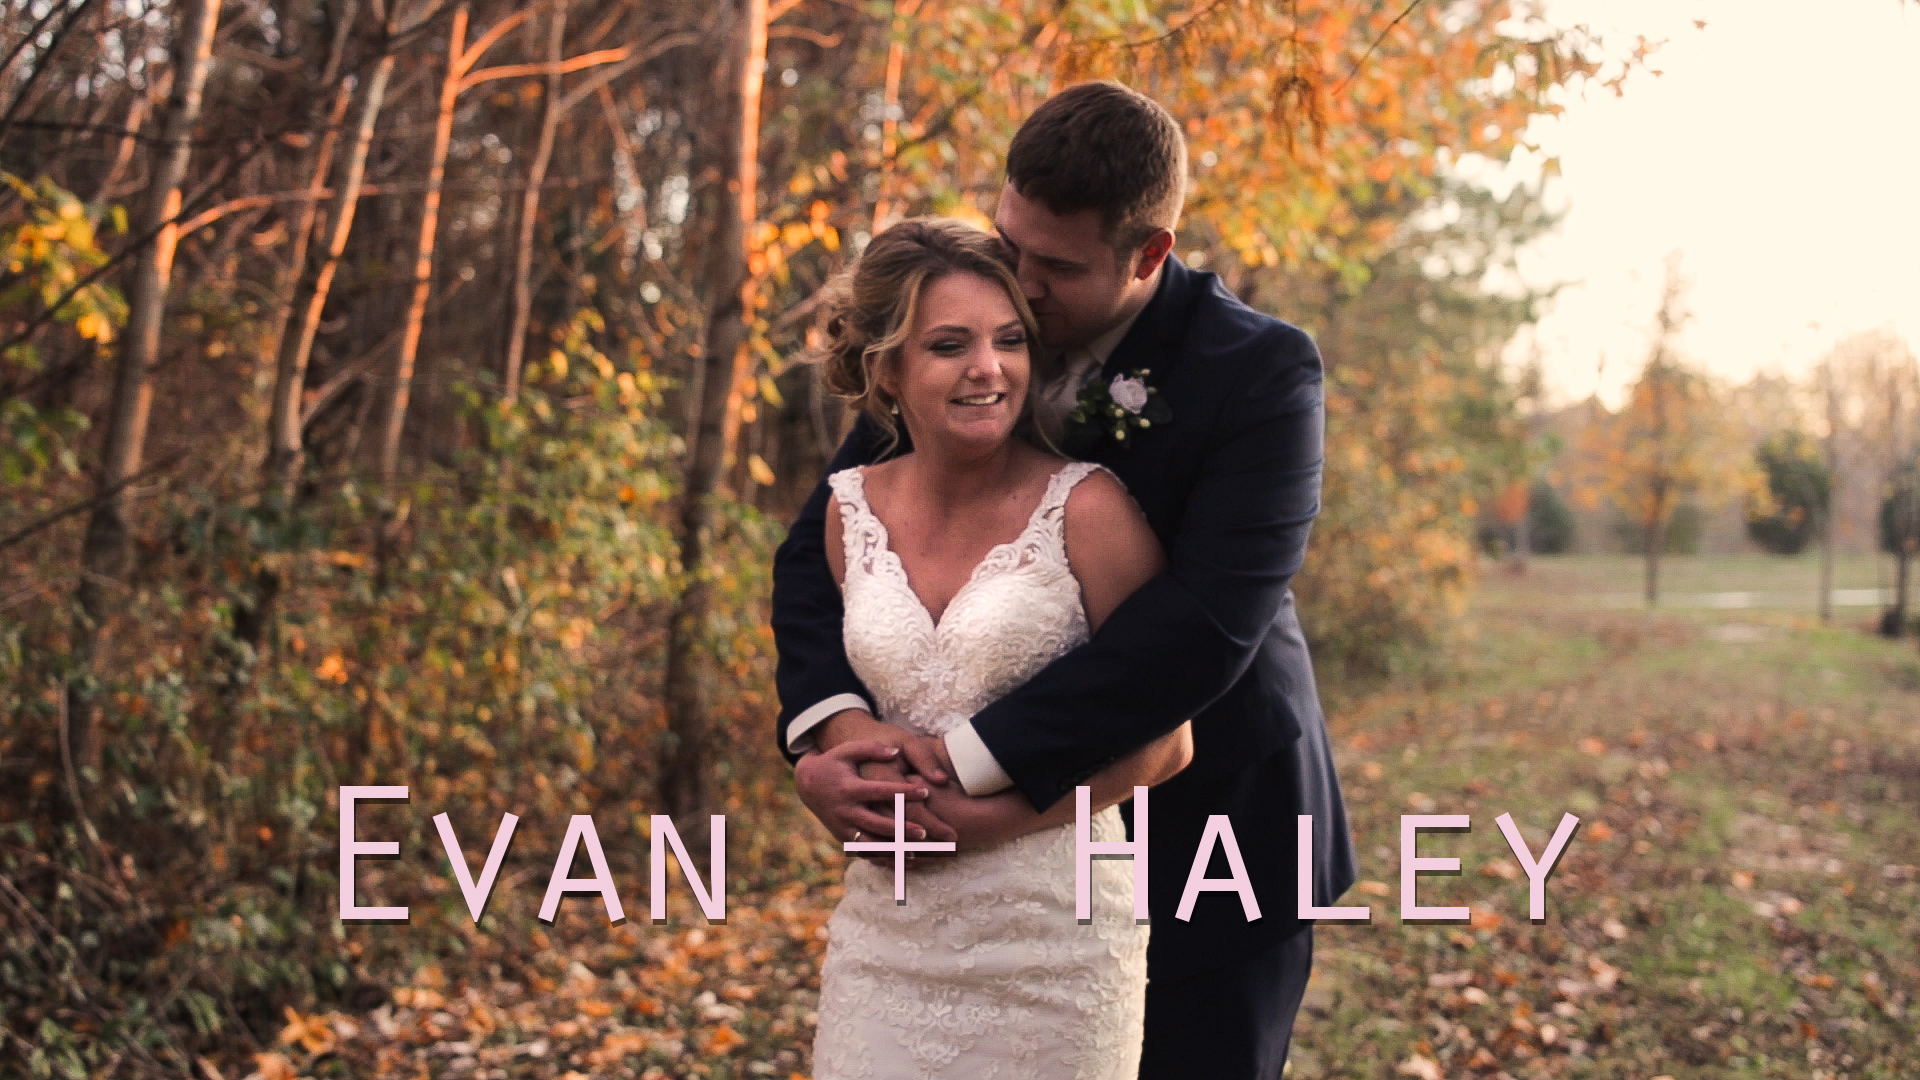 Evan + Haley | Evansville, Indiana | Discovery Lodge